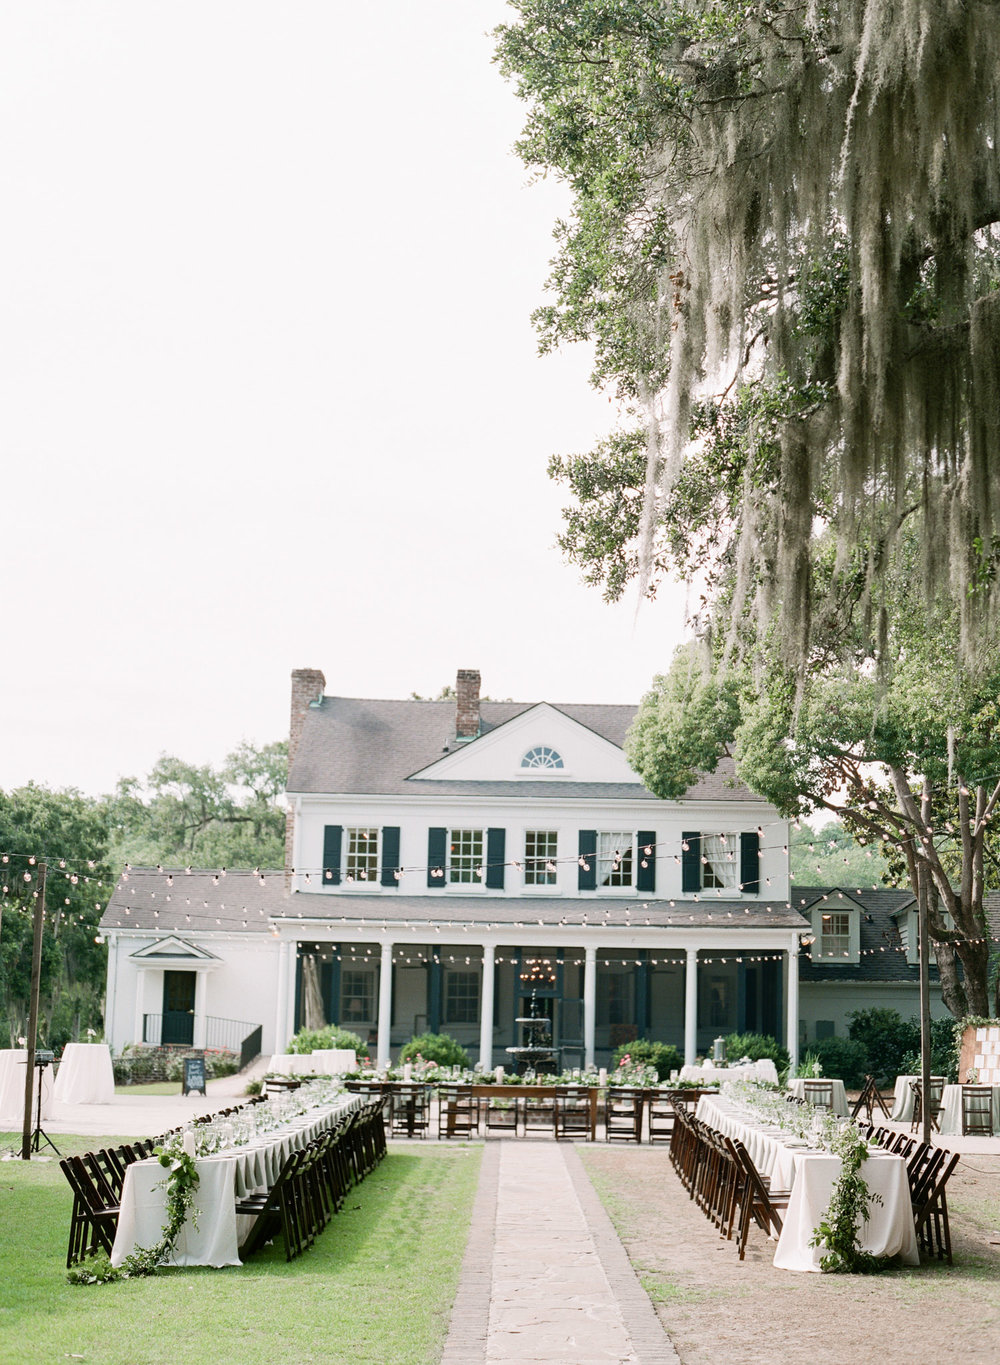 Charleston-Wedding-Venue-Legare-Waring-1.jpg